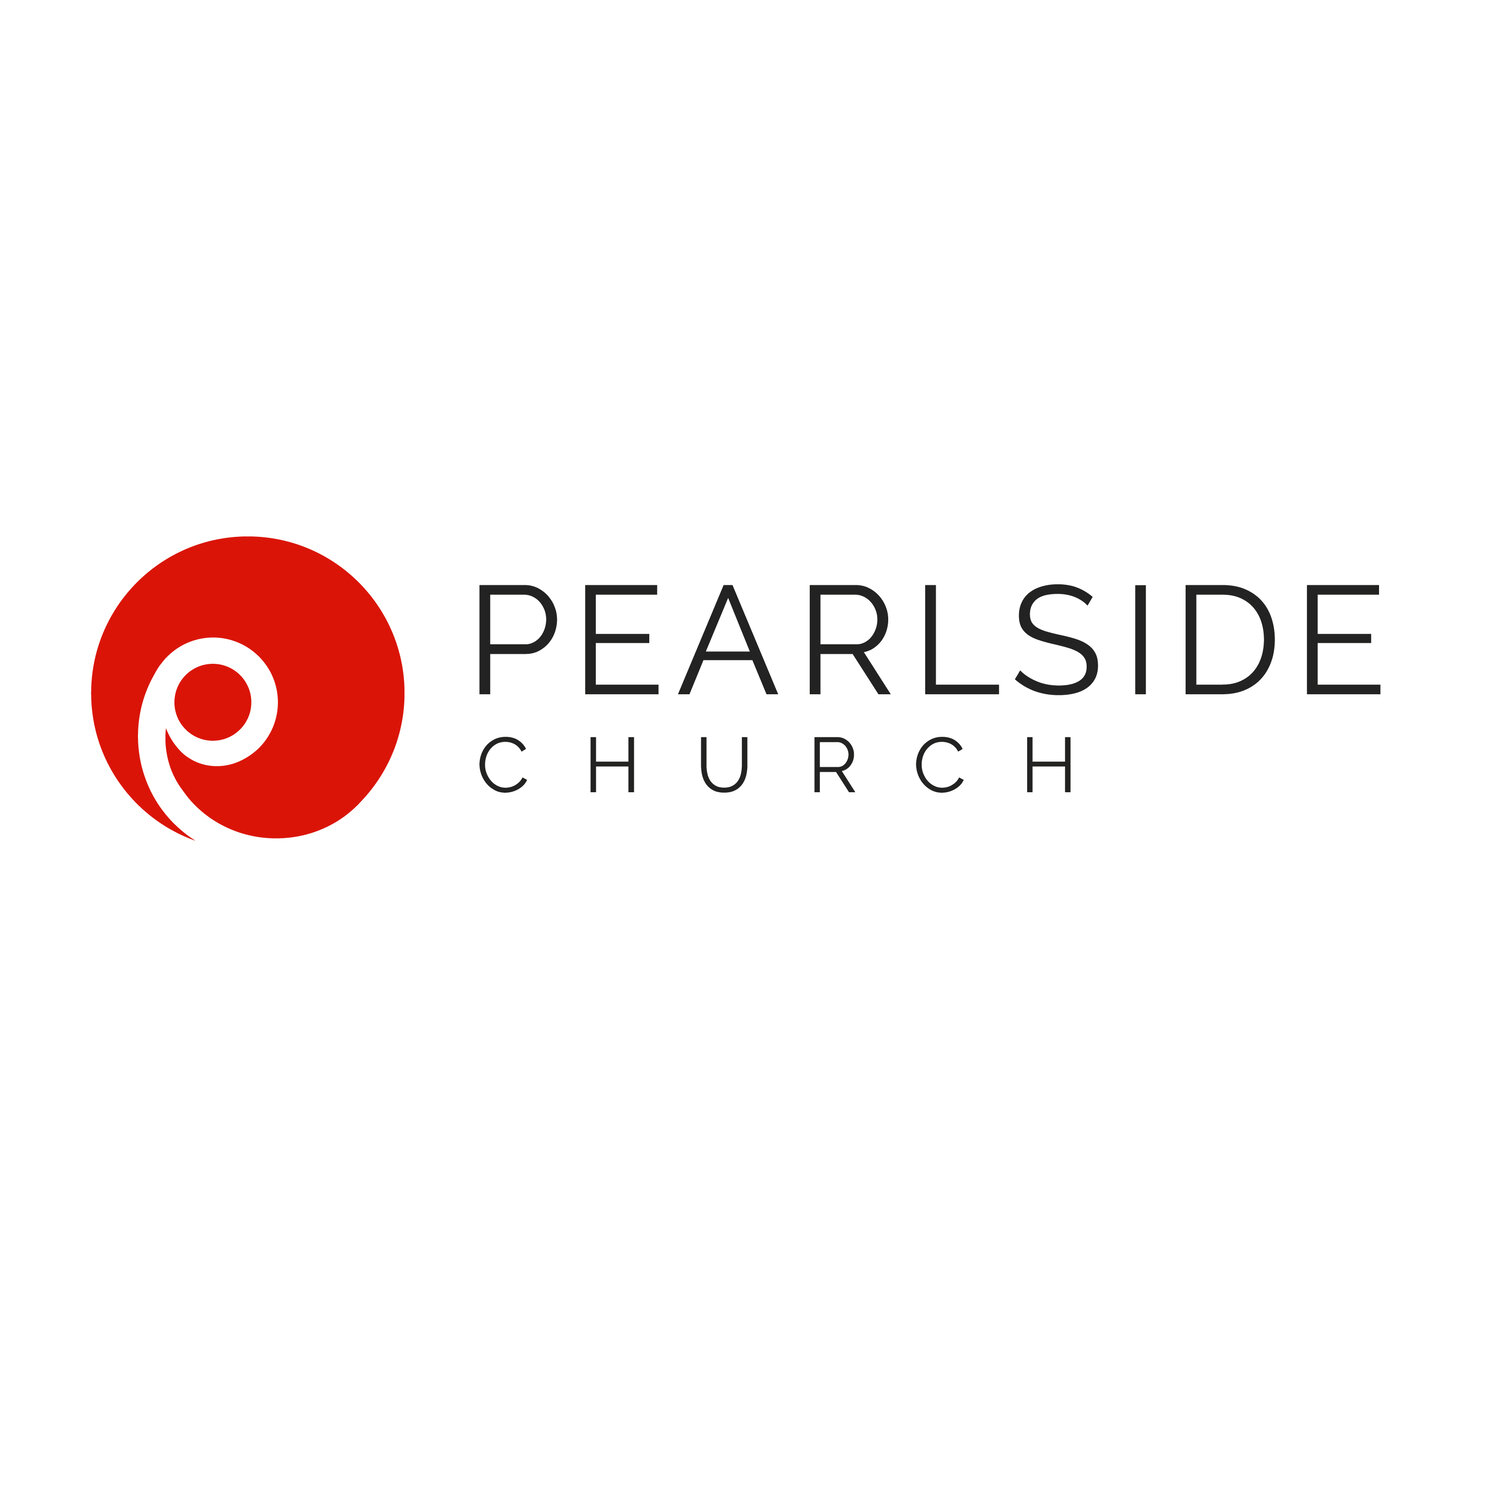 Pearlside Church Corporate Office logo